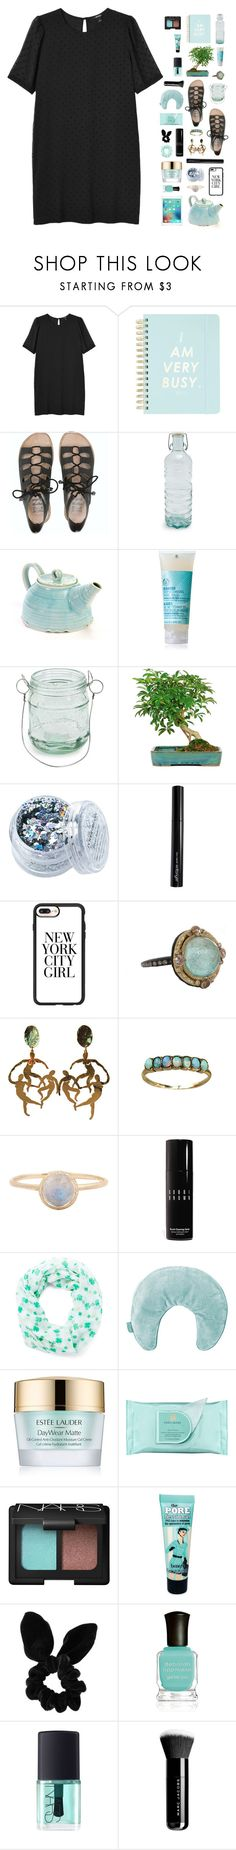 """in and out."" by ajeungs ❤ liked on Polyvore featuring Monki, Billabong, Global, Design Ideas, In Your Dreams, Antonym, Casetify, Emily Armenta, Bobbi Brown Cosmetics and David & Young"